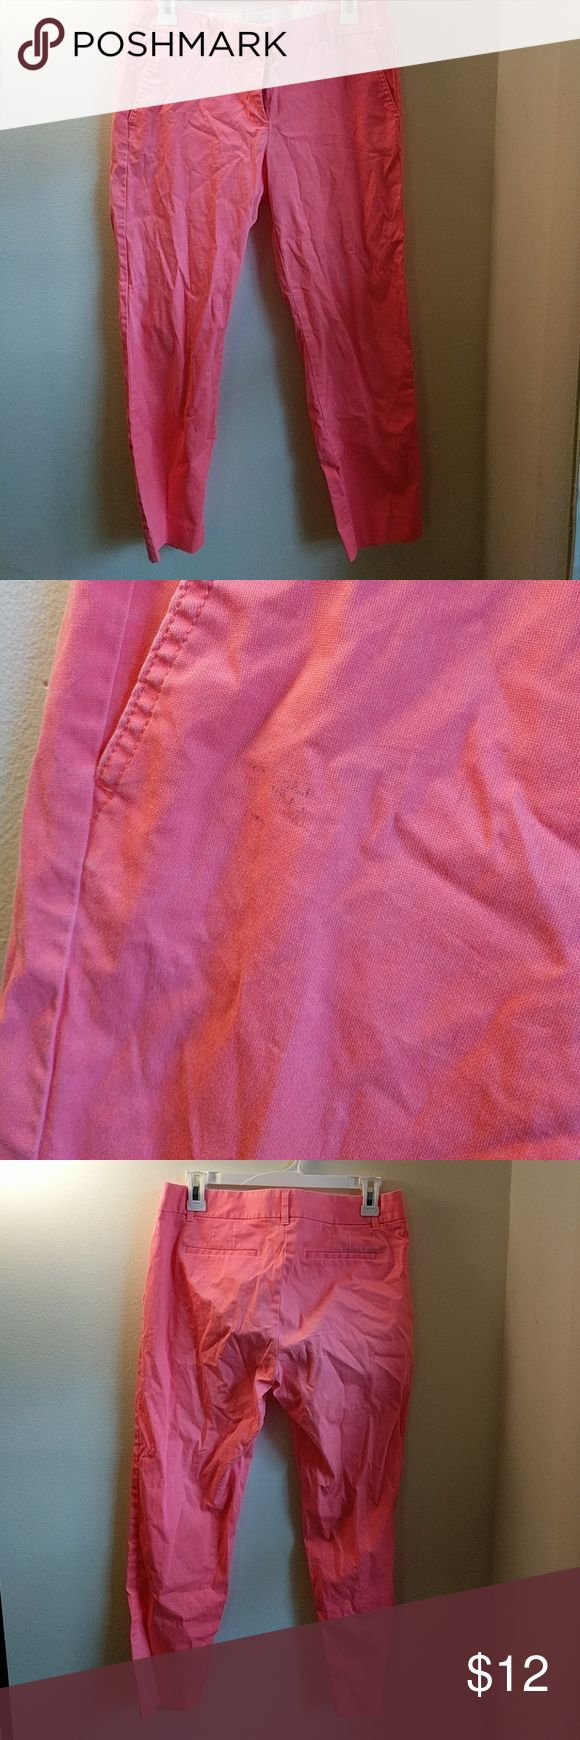 Jcrew Cropped Chino Neon pink, some slight discoloration on the back and black mark on the front. Pricing reflects. J. Crew Pants Ankle & Cropped